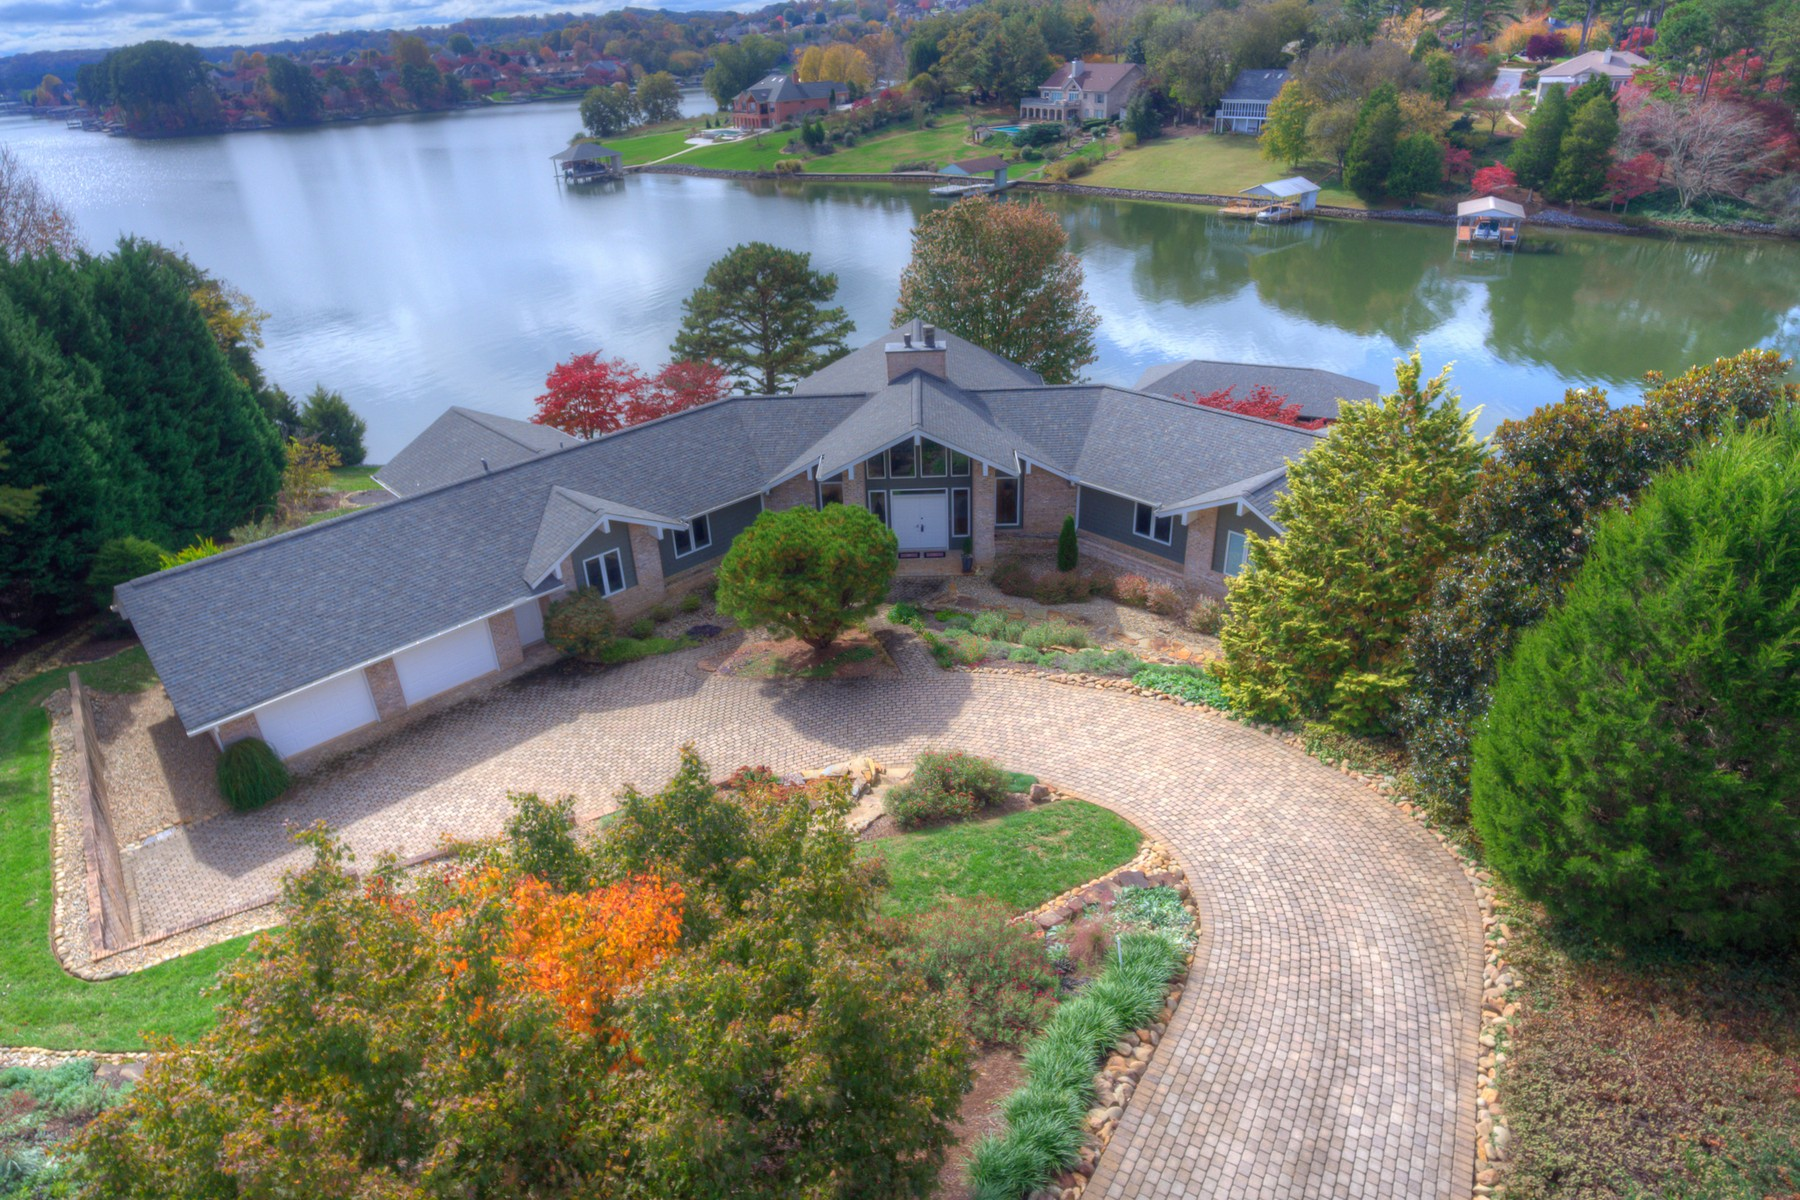 Single Family Home for Sale at Lakefront Contemporary 232 Tecumseh Way Loudon, Tennessee 37774 United States